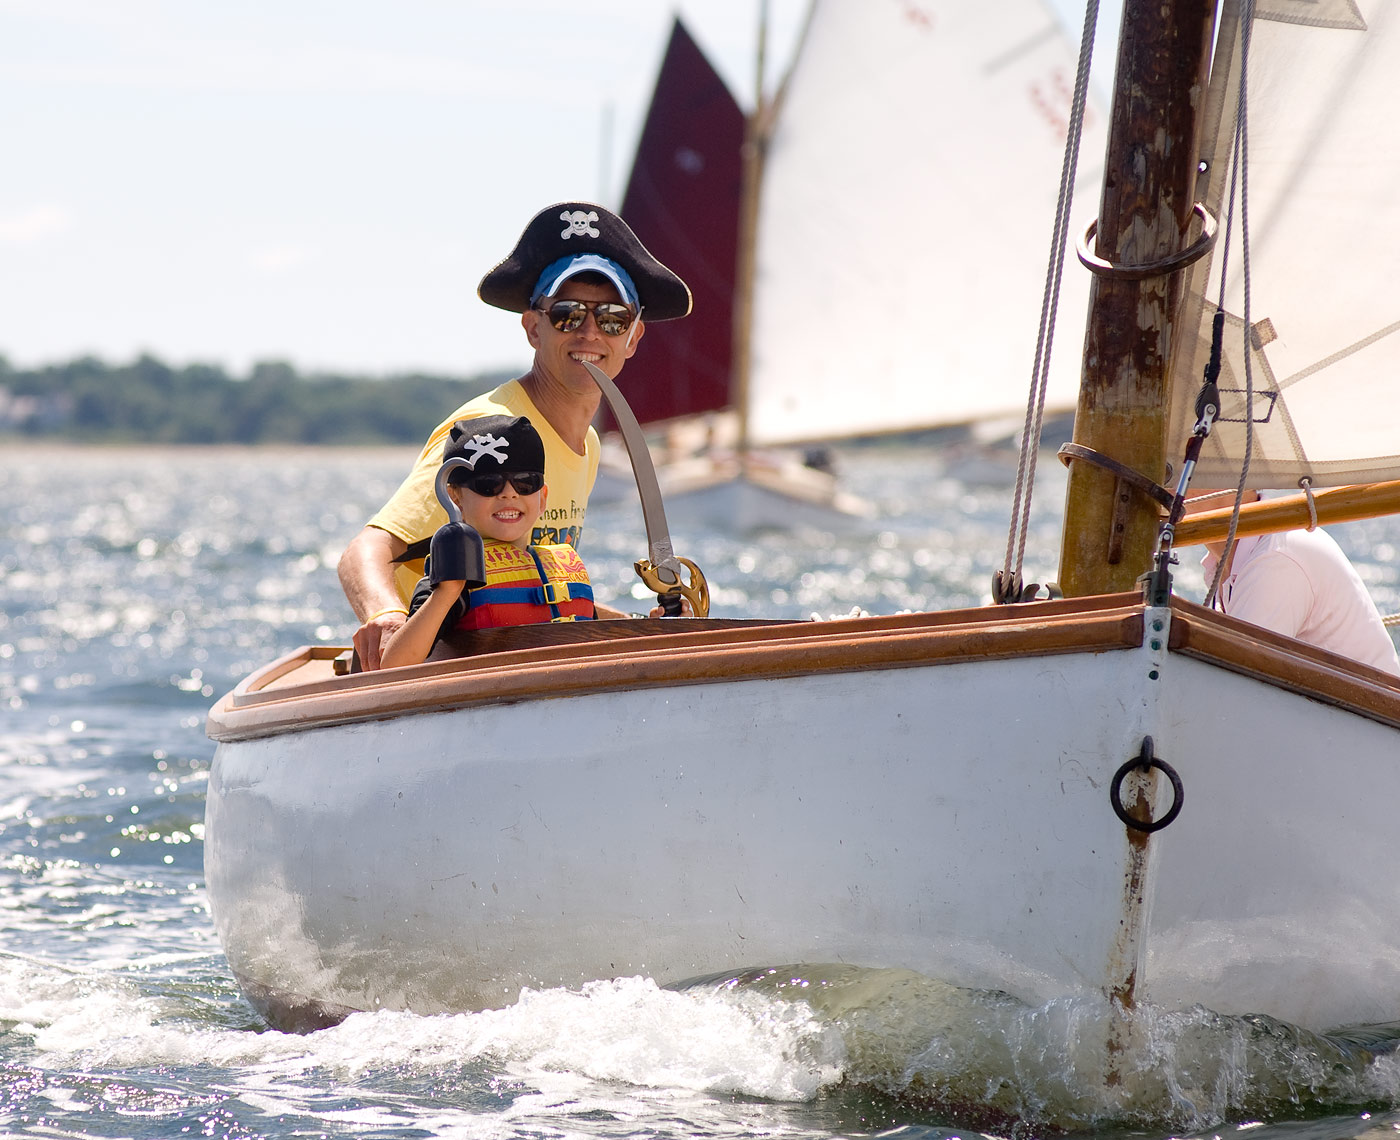 Child and father wearing pirate hats on sailboat